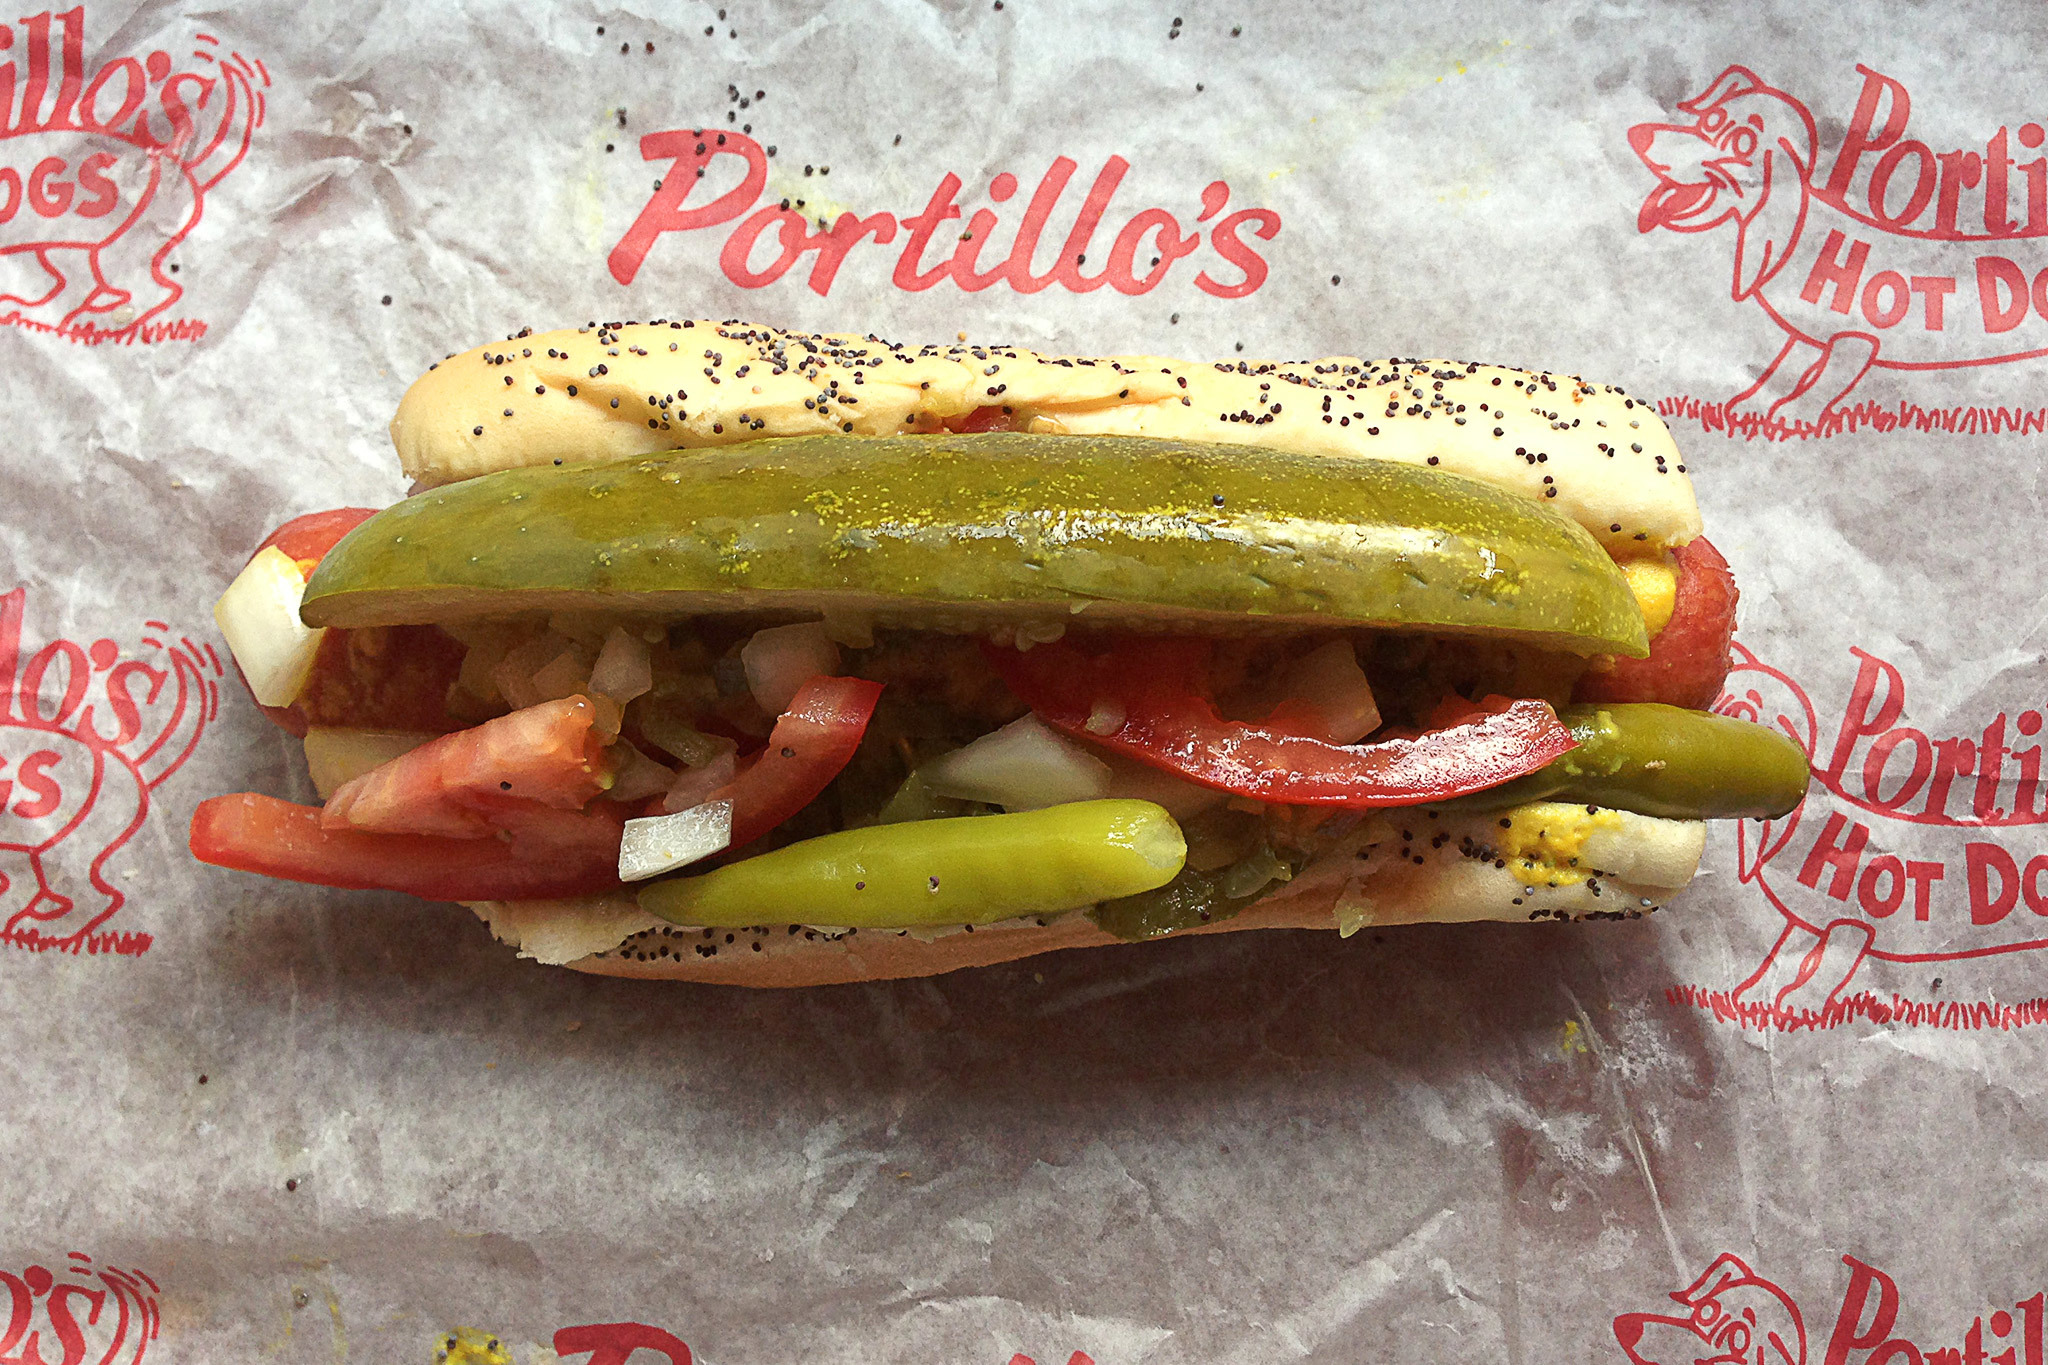 Honorable Mention: Portillo's